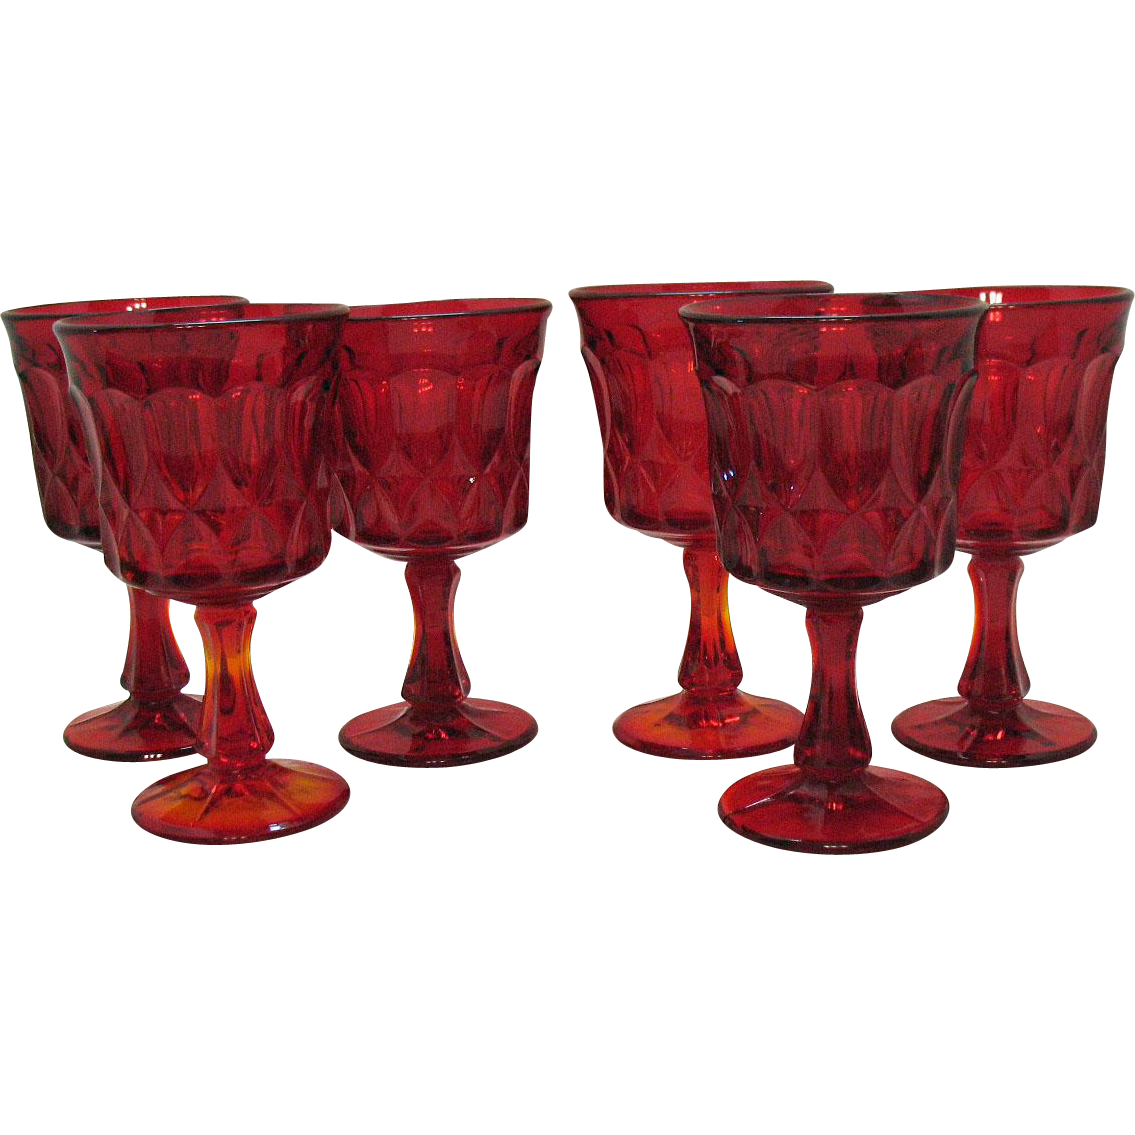 Vintage Noritake Ruby Red 6 Water Goblets Perspective Pattern 1970-85 Good Condition